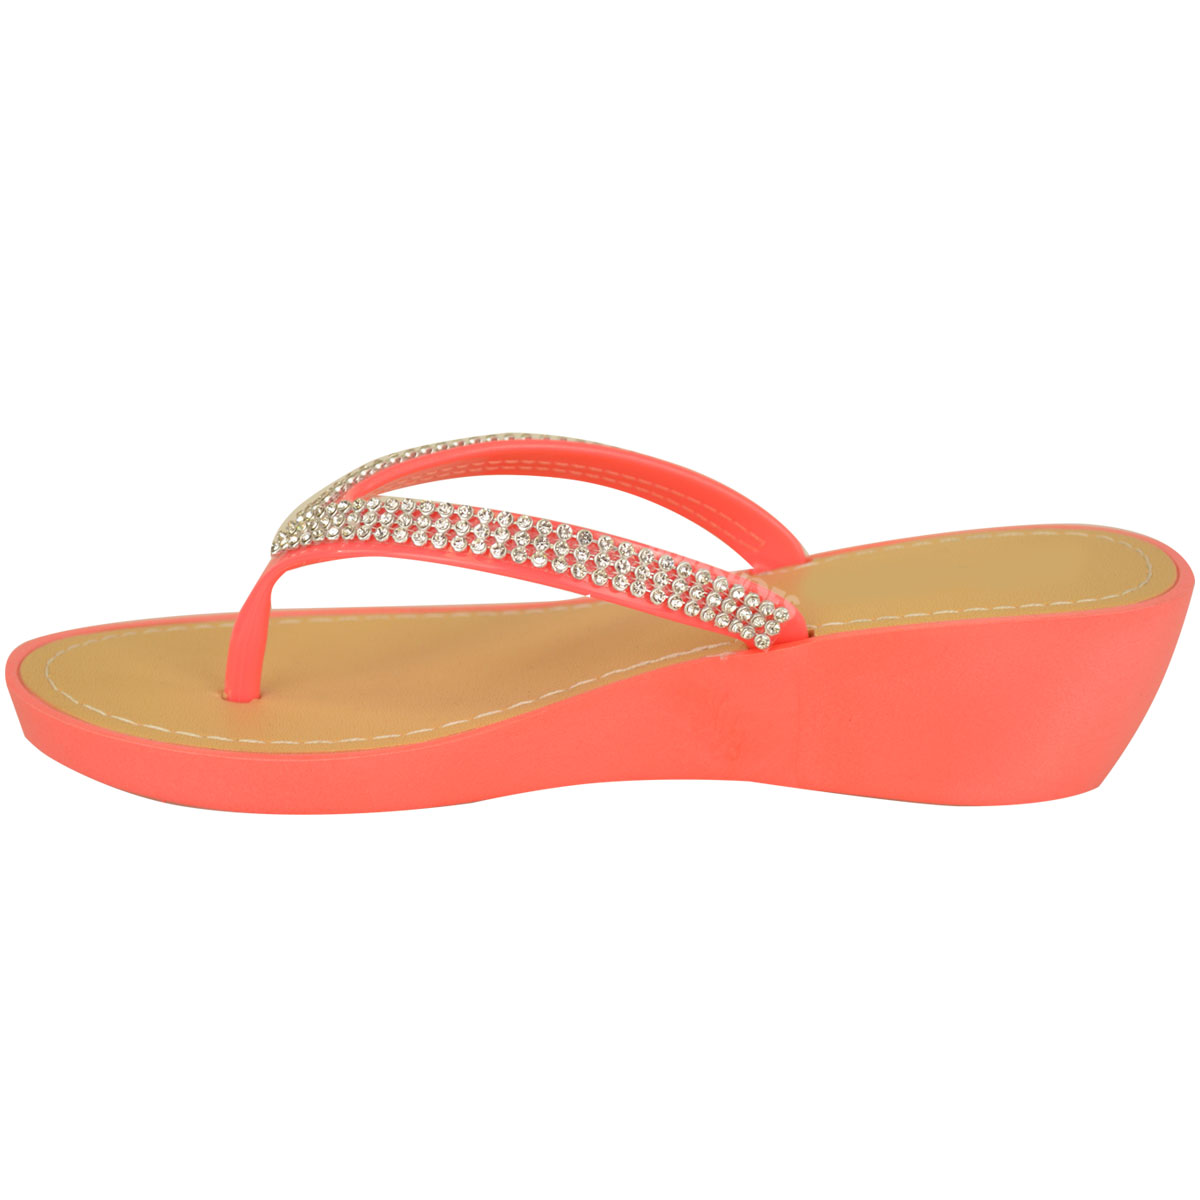 NEW-JELLY-SANDALS-WOMENS-LADIES-DIAMANTE-SUMMER-HOLIDAY-COMFORTS-FLIP-FLOPS-SIZE thumbnail 17